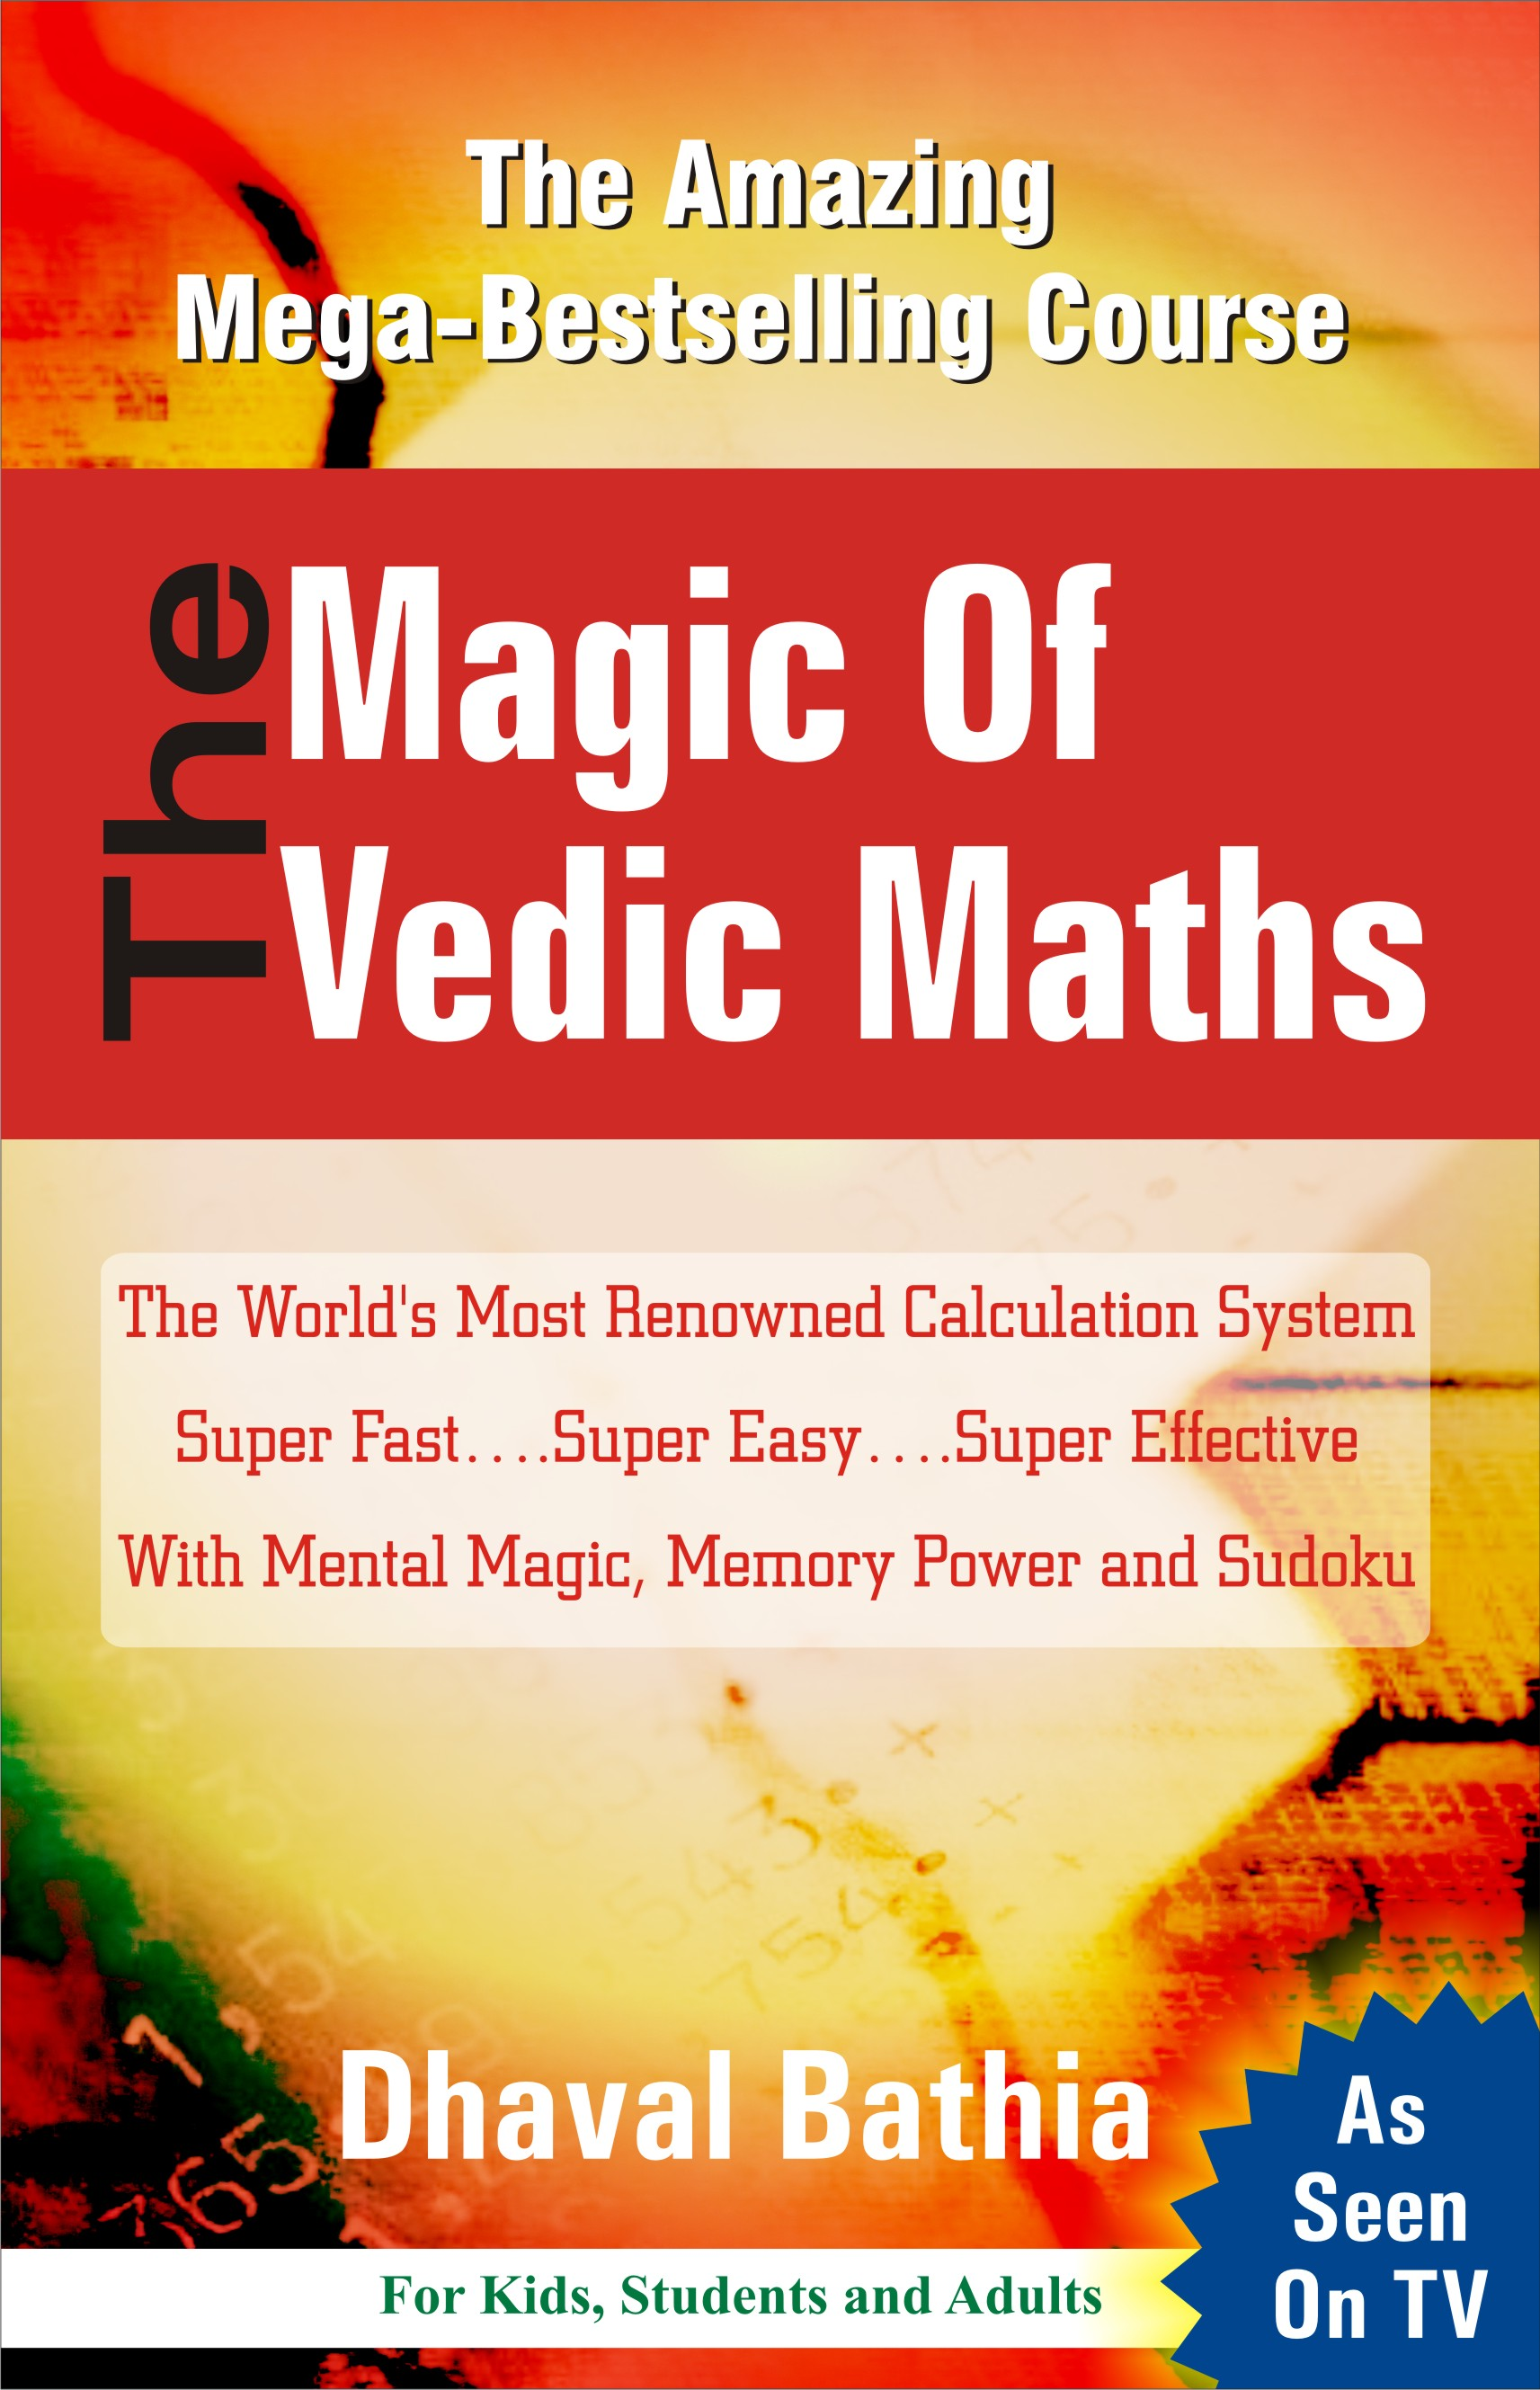 COMPLETE VEDIC MATH KIT